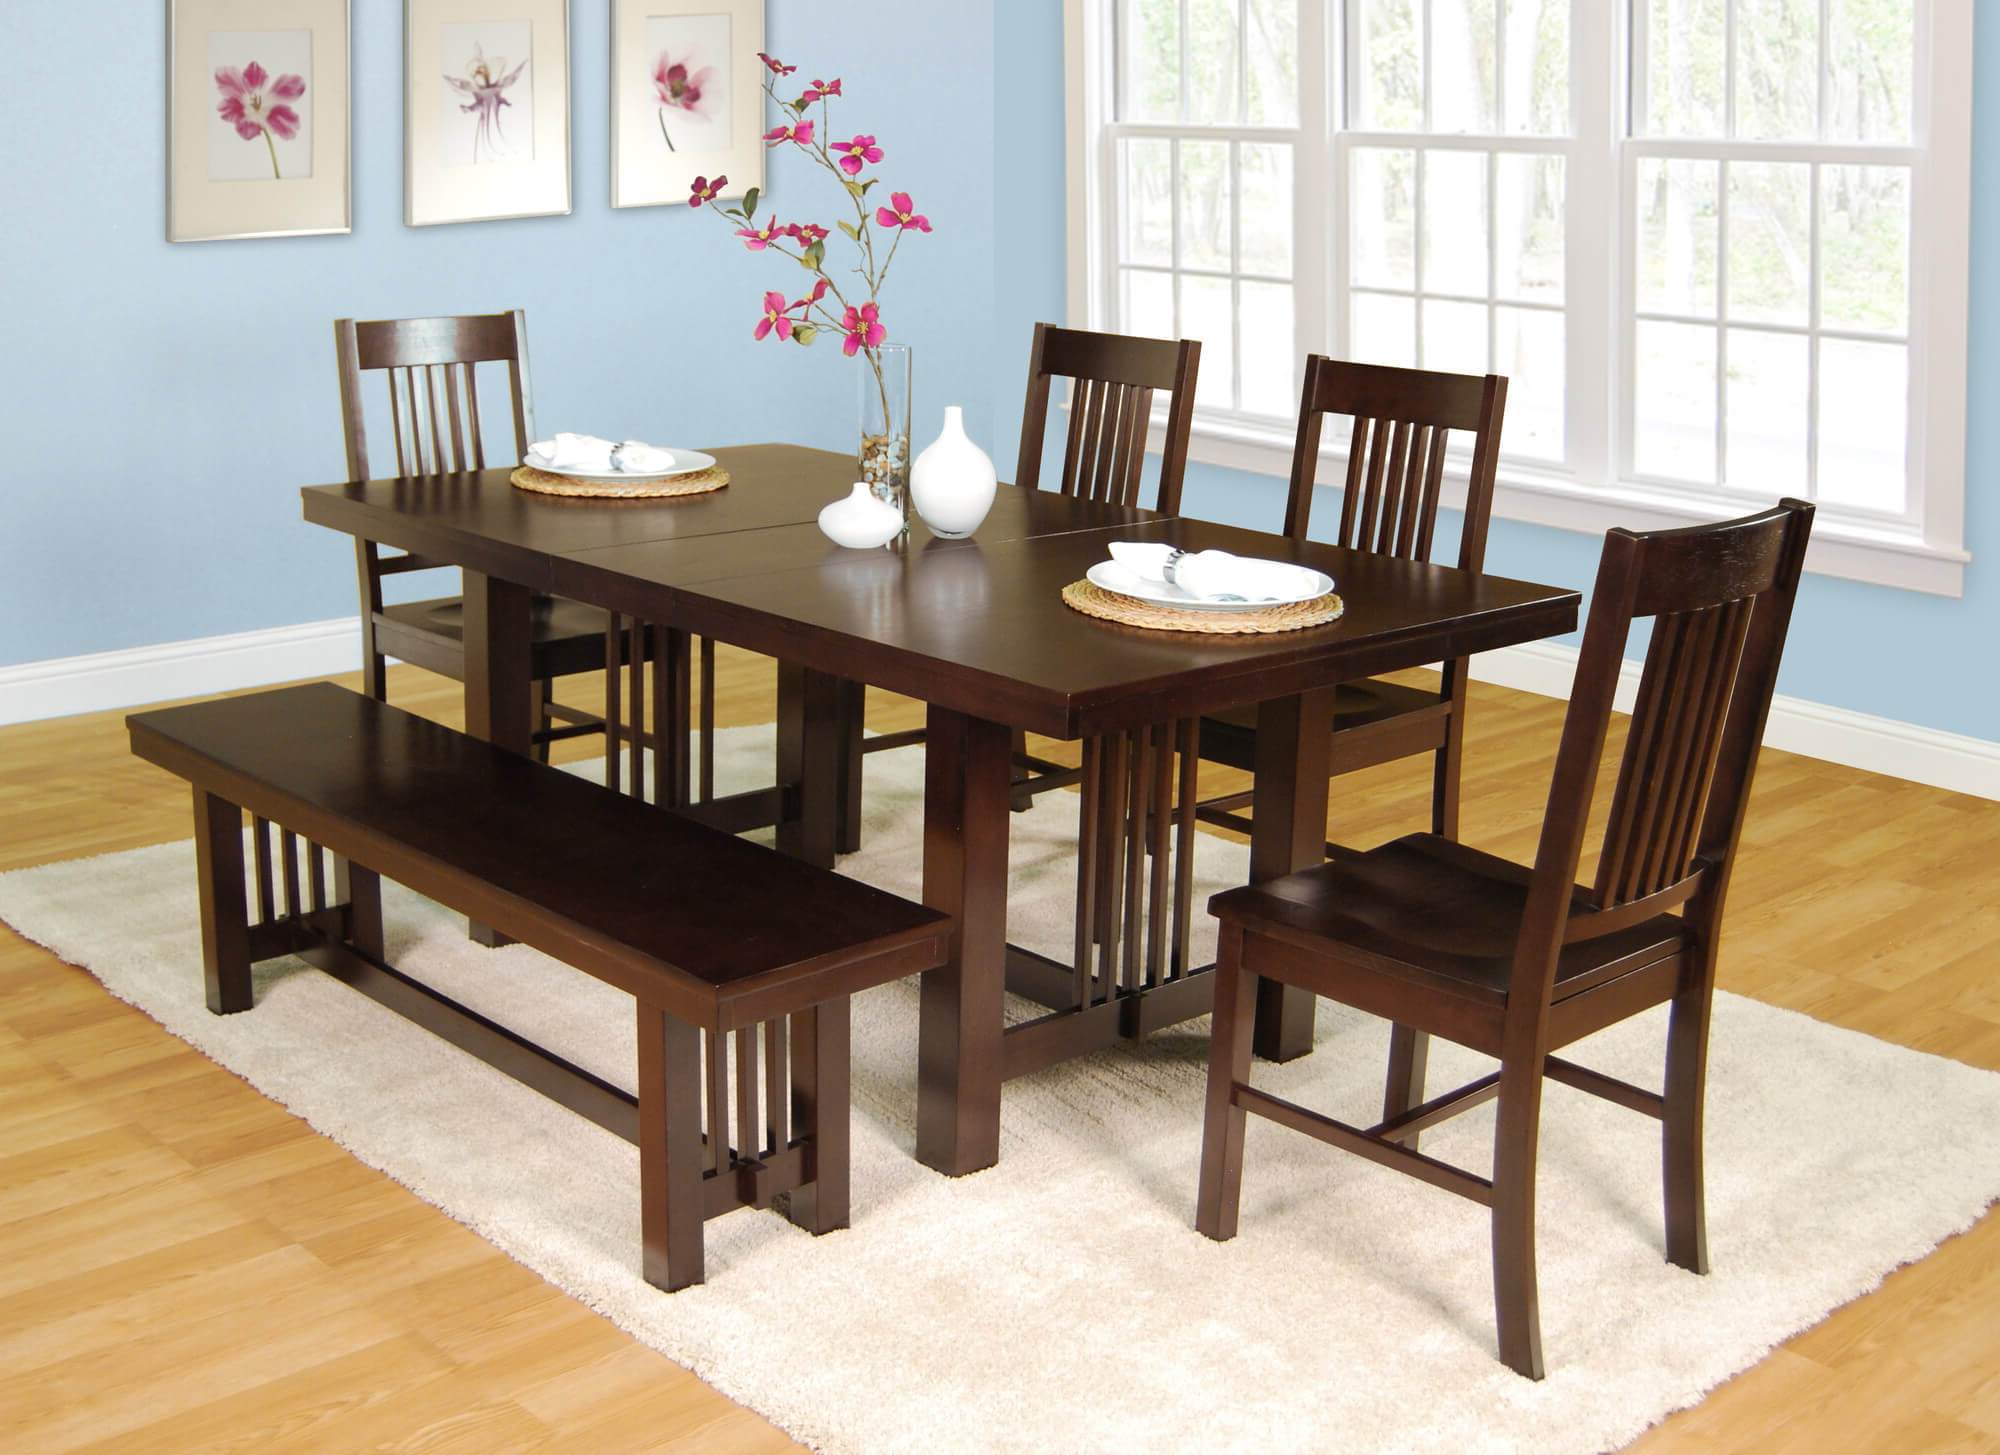 Widely Used Large Rustic Look Dining Tables For 10 Modern Walnut Finish Dining Room Table Set Furniture (View 14 of 25)